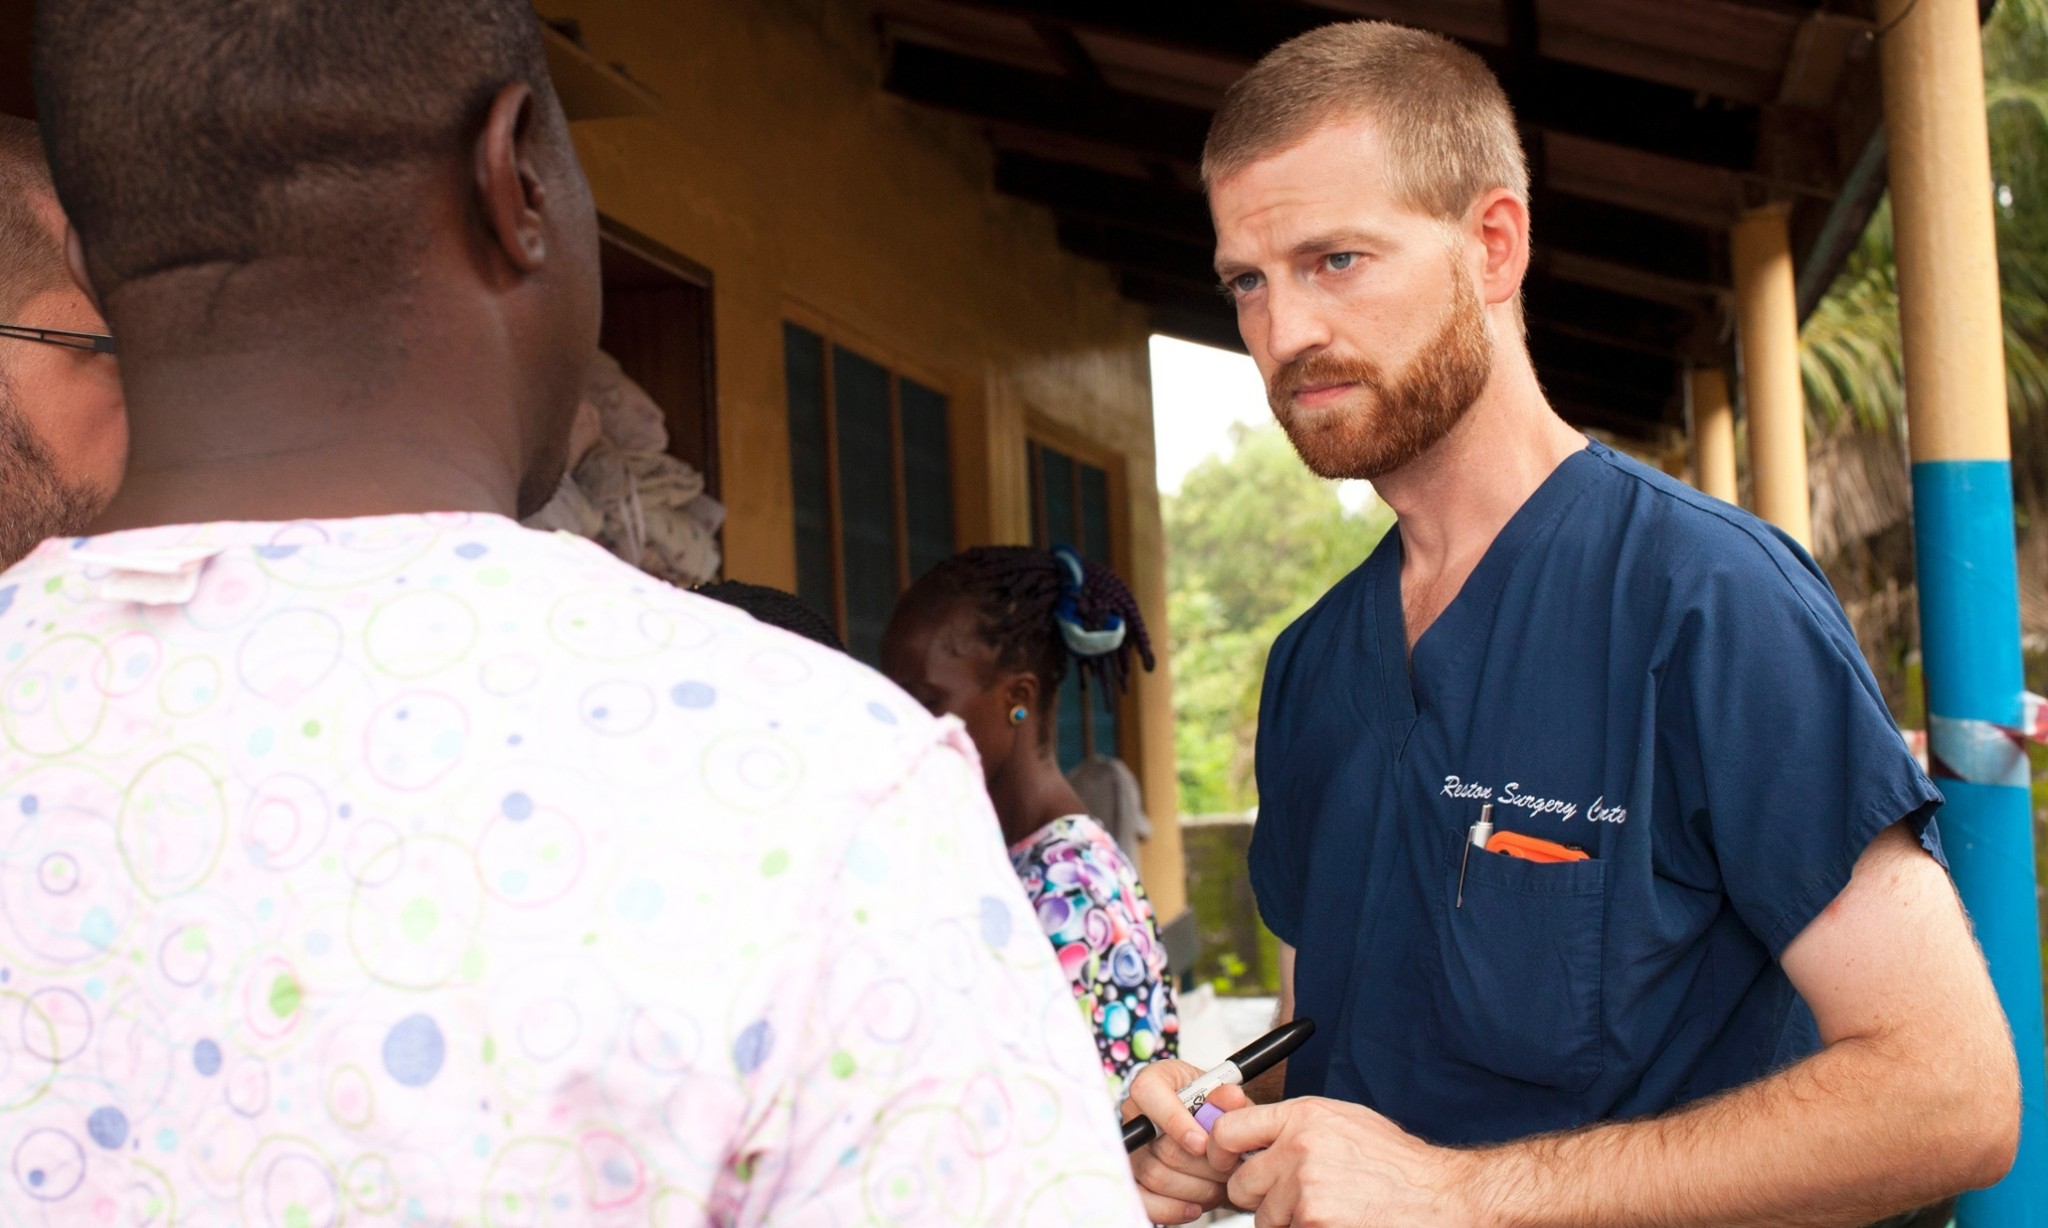 US Peace Corps evacuates hundreds from west Africa over Ebola outbreak